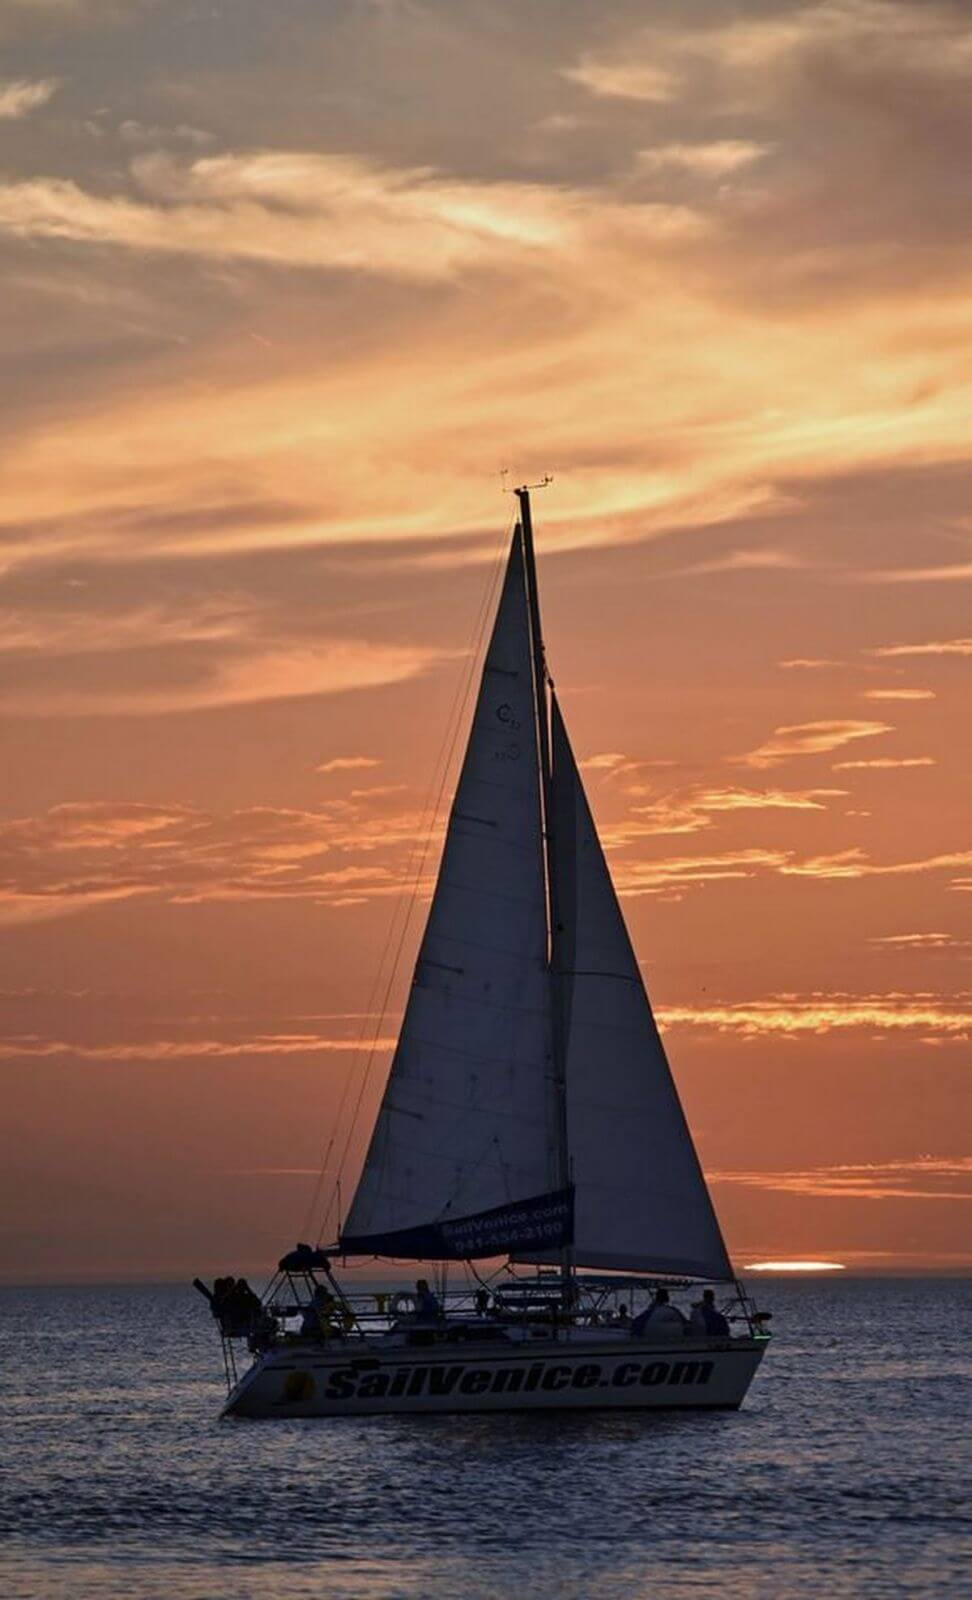 Sunset on the Gulf of Mexico with Sail Venice sailboat in the foreground.